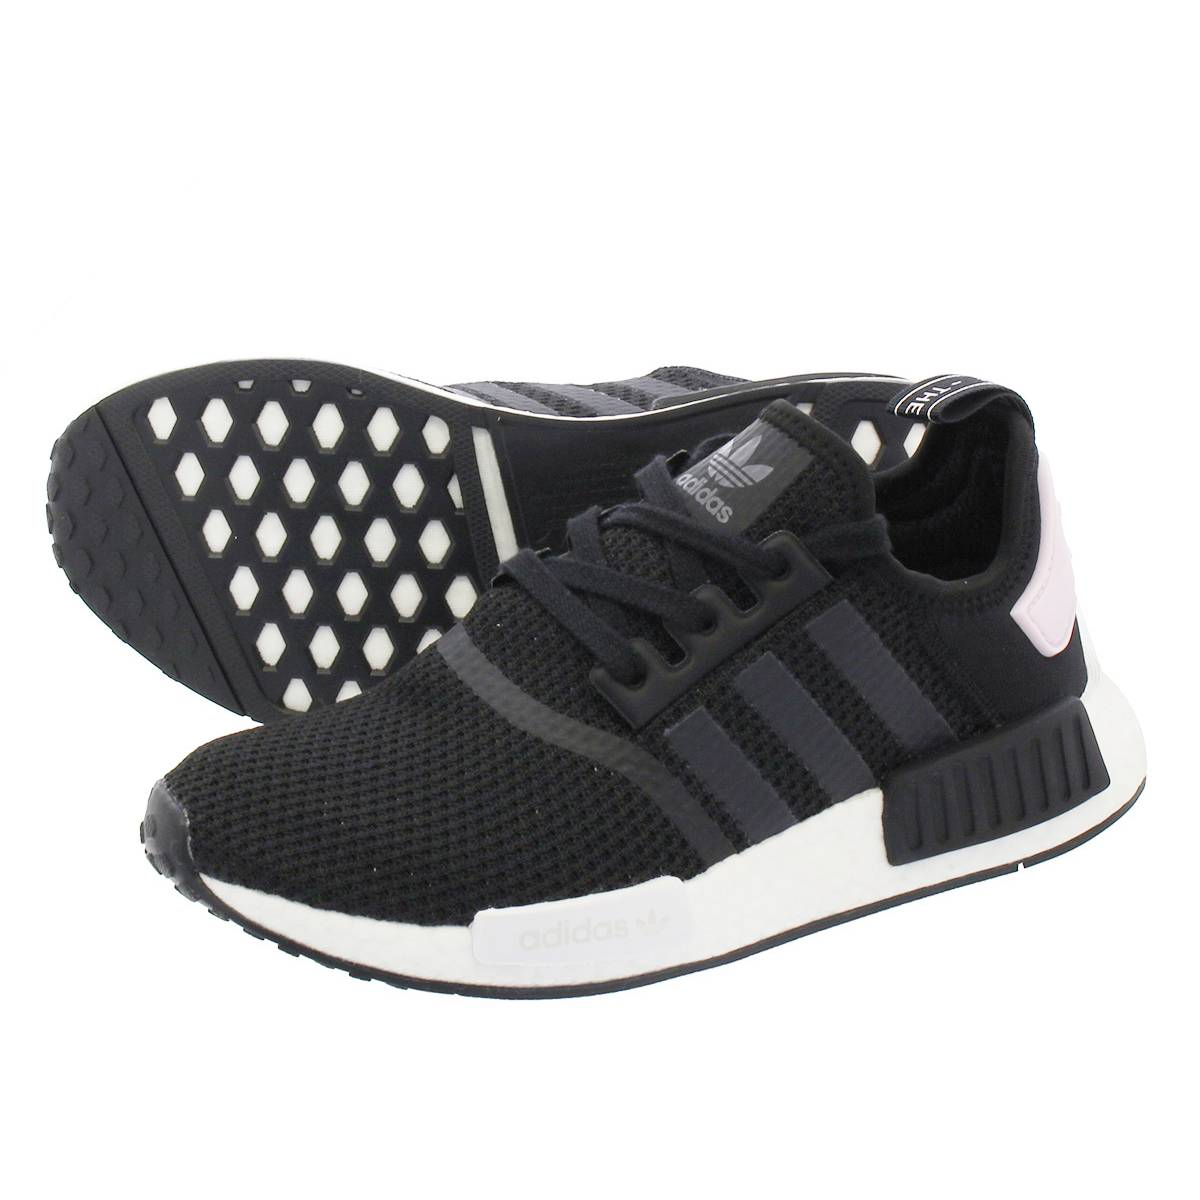 quality design ee1be 9b057 adidas NMD_R1 W Adidas NMD_R1 women CORE BLACK/RUNNING WHITE/CLEAR PINK  b37649